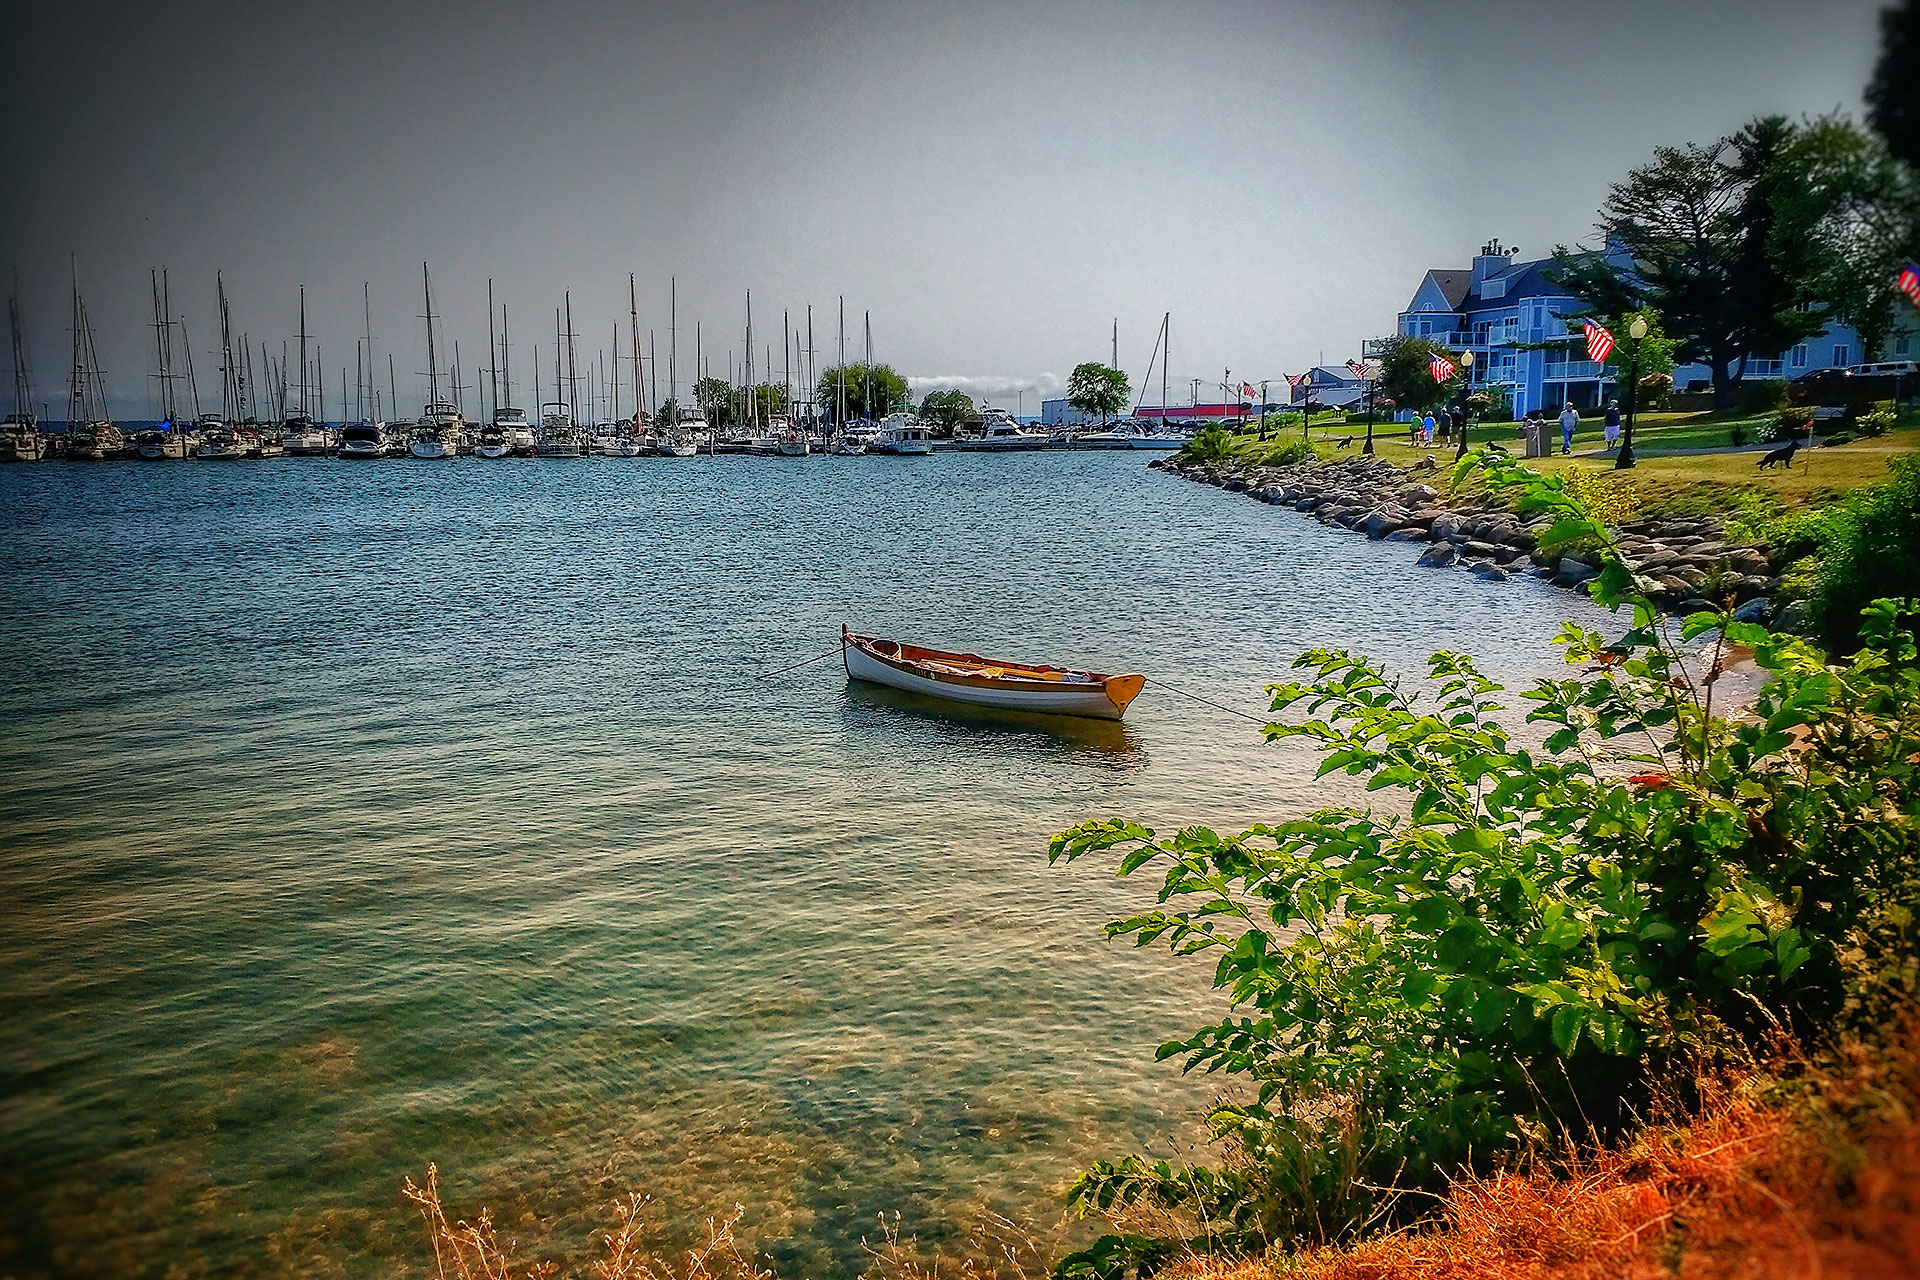 Bayfield, Wisconsin in Door County; Courtesy of charliewatson/Shutterstock.com